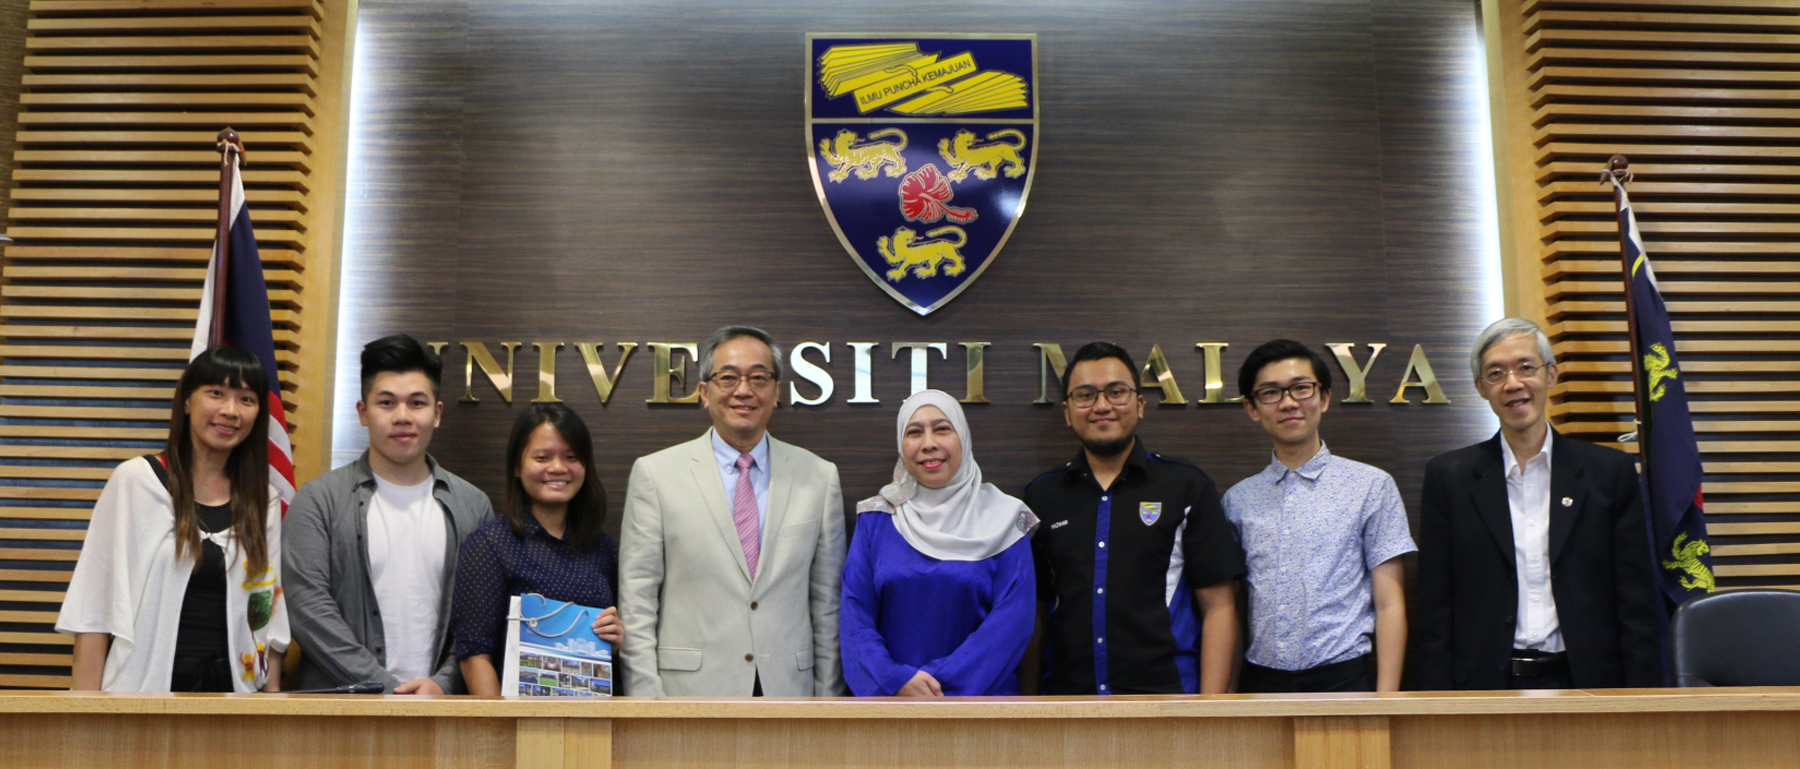 A group photo of representatives of UM and the University of Malaya